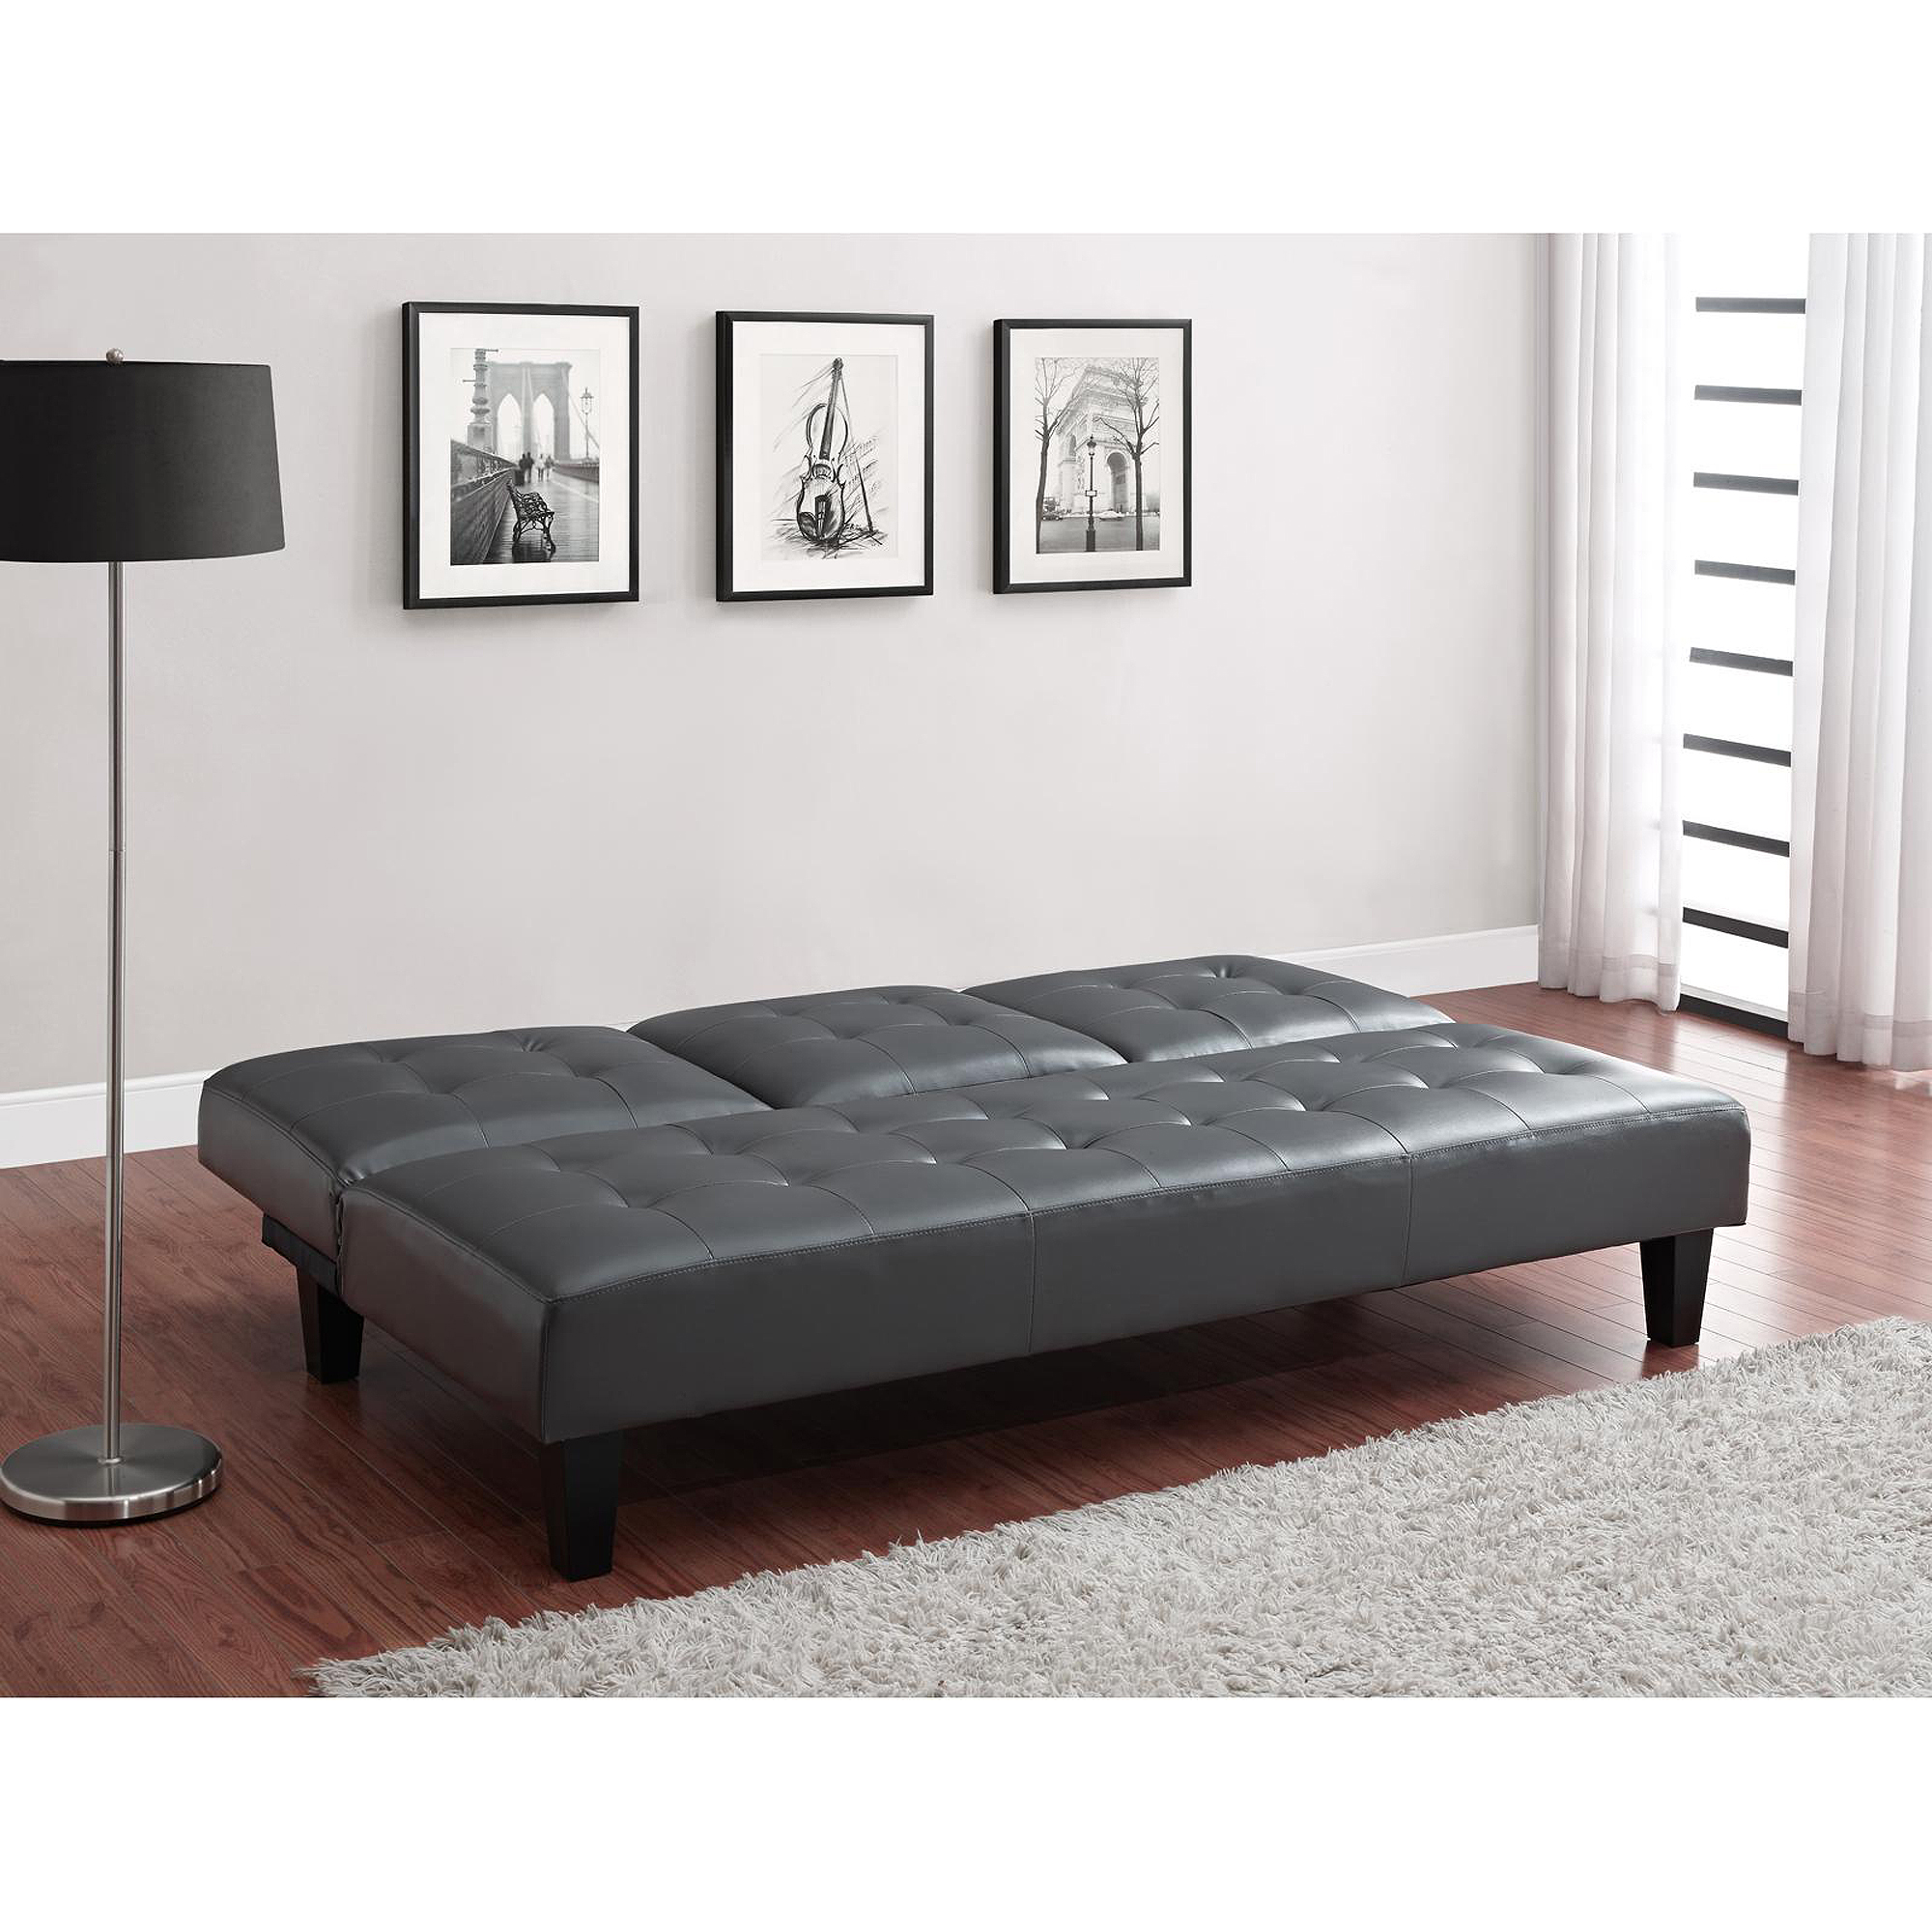 julia cupholder convertible futon sofa bed white unique ideas www